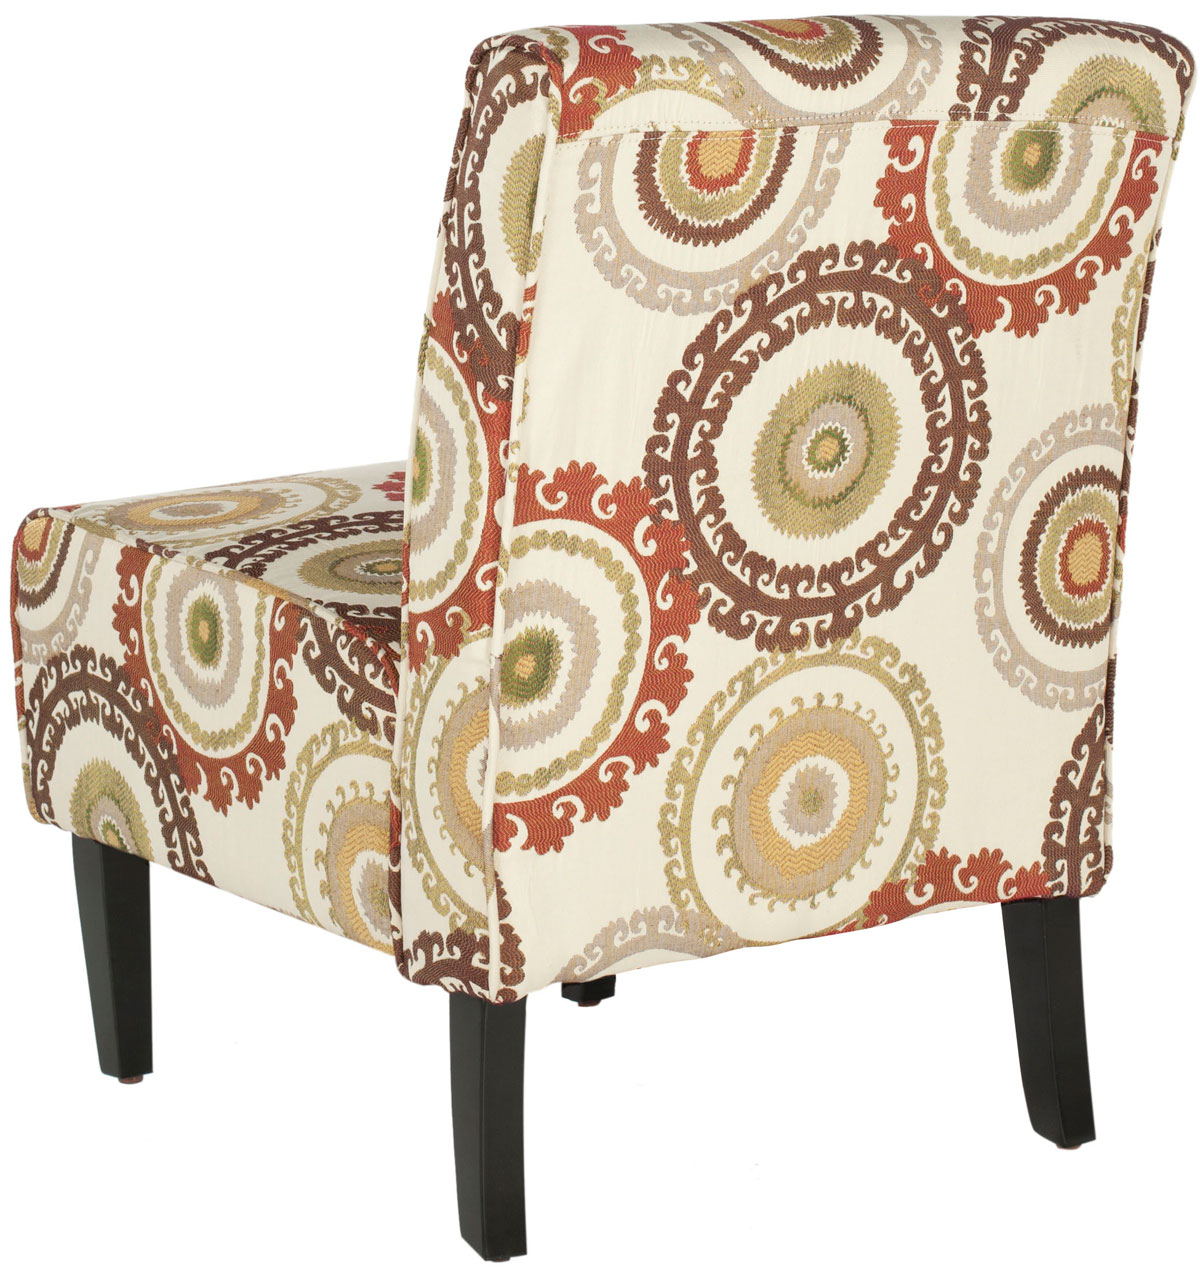 Our Slim Marka Armless Chair Features A Clean And Elegant Design Perfect  For Smaller Spaces. A Generously Padded Seat And Back, Wrapped In An Earthy  ...